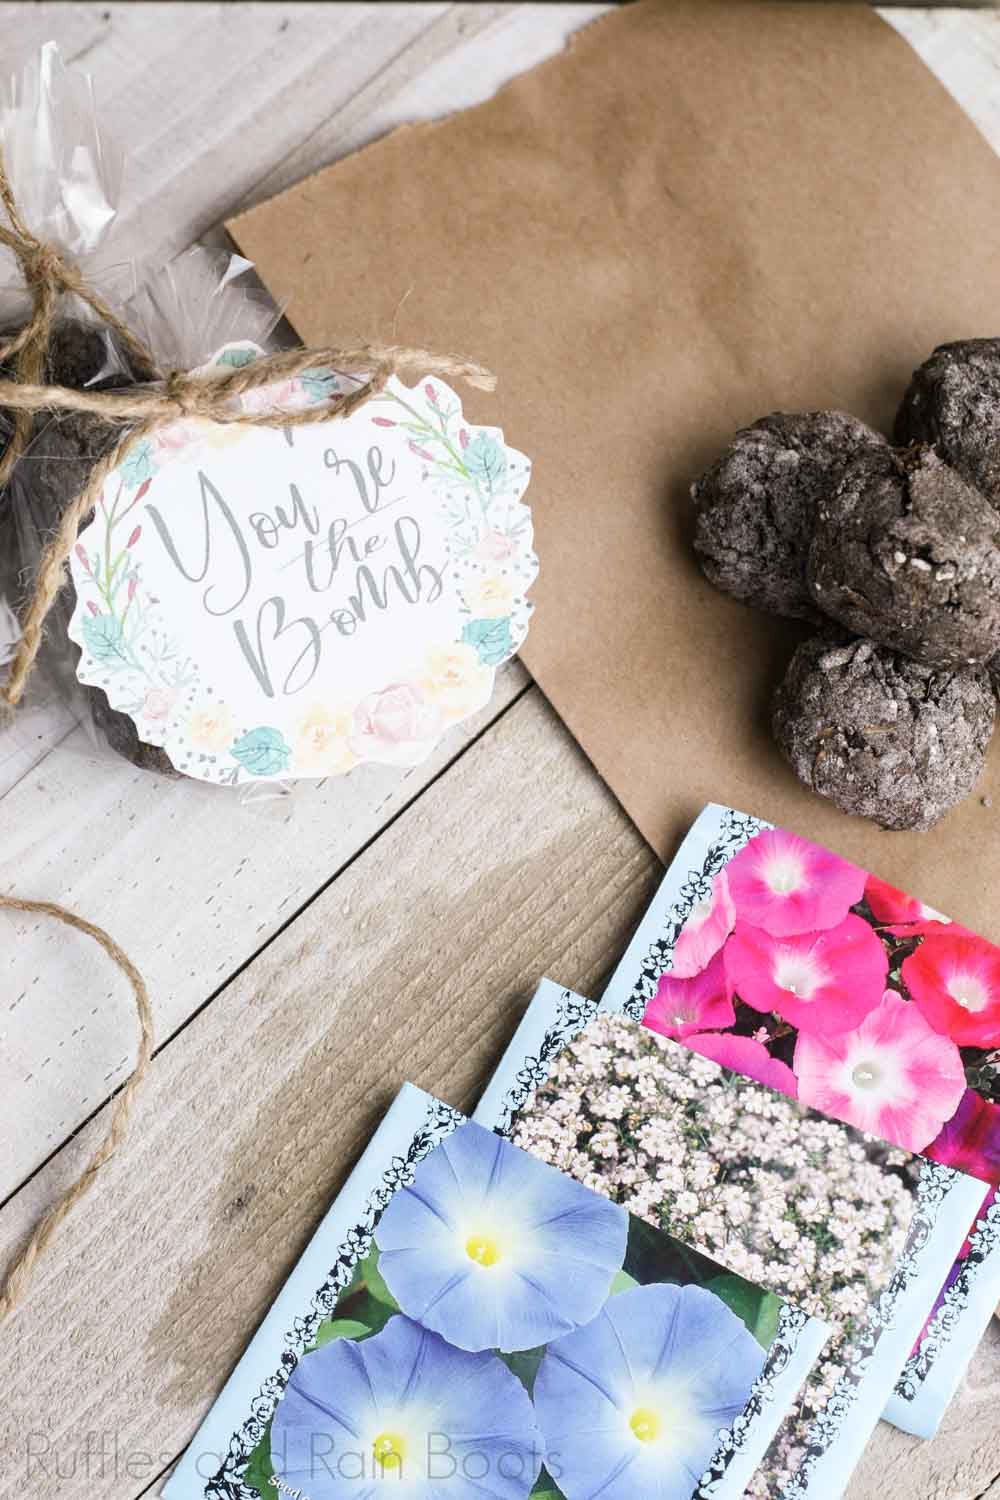 easy summer activity for ids seed bomb recipe on a wooden background with bags of flower seeds